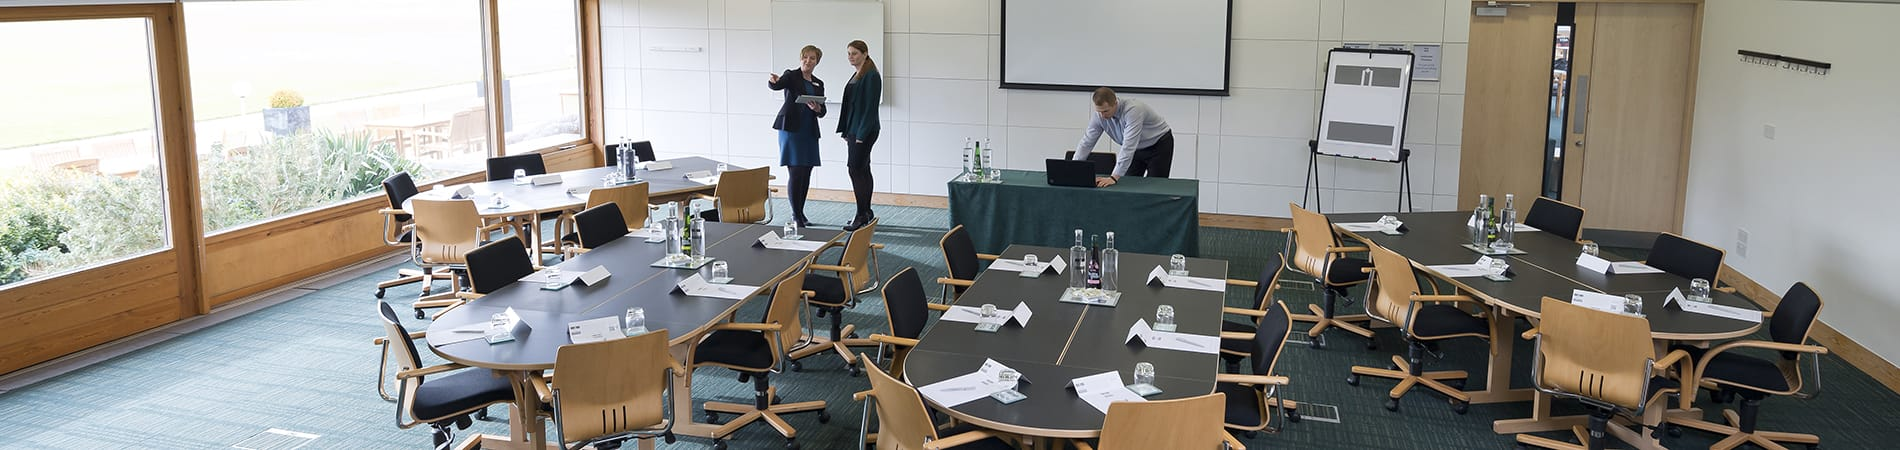 meeting room at moller institute